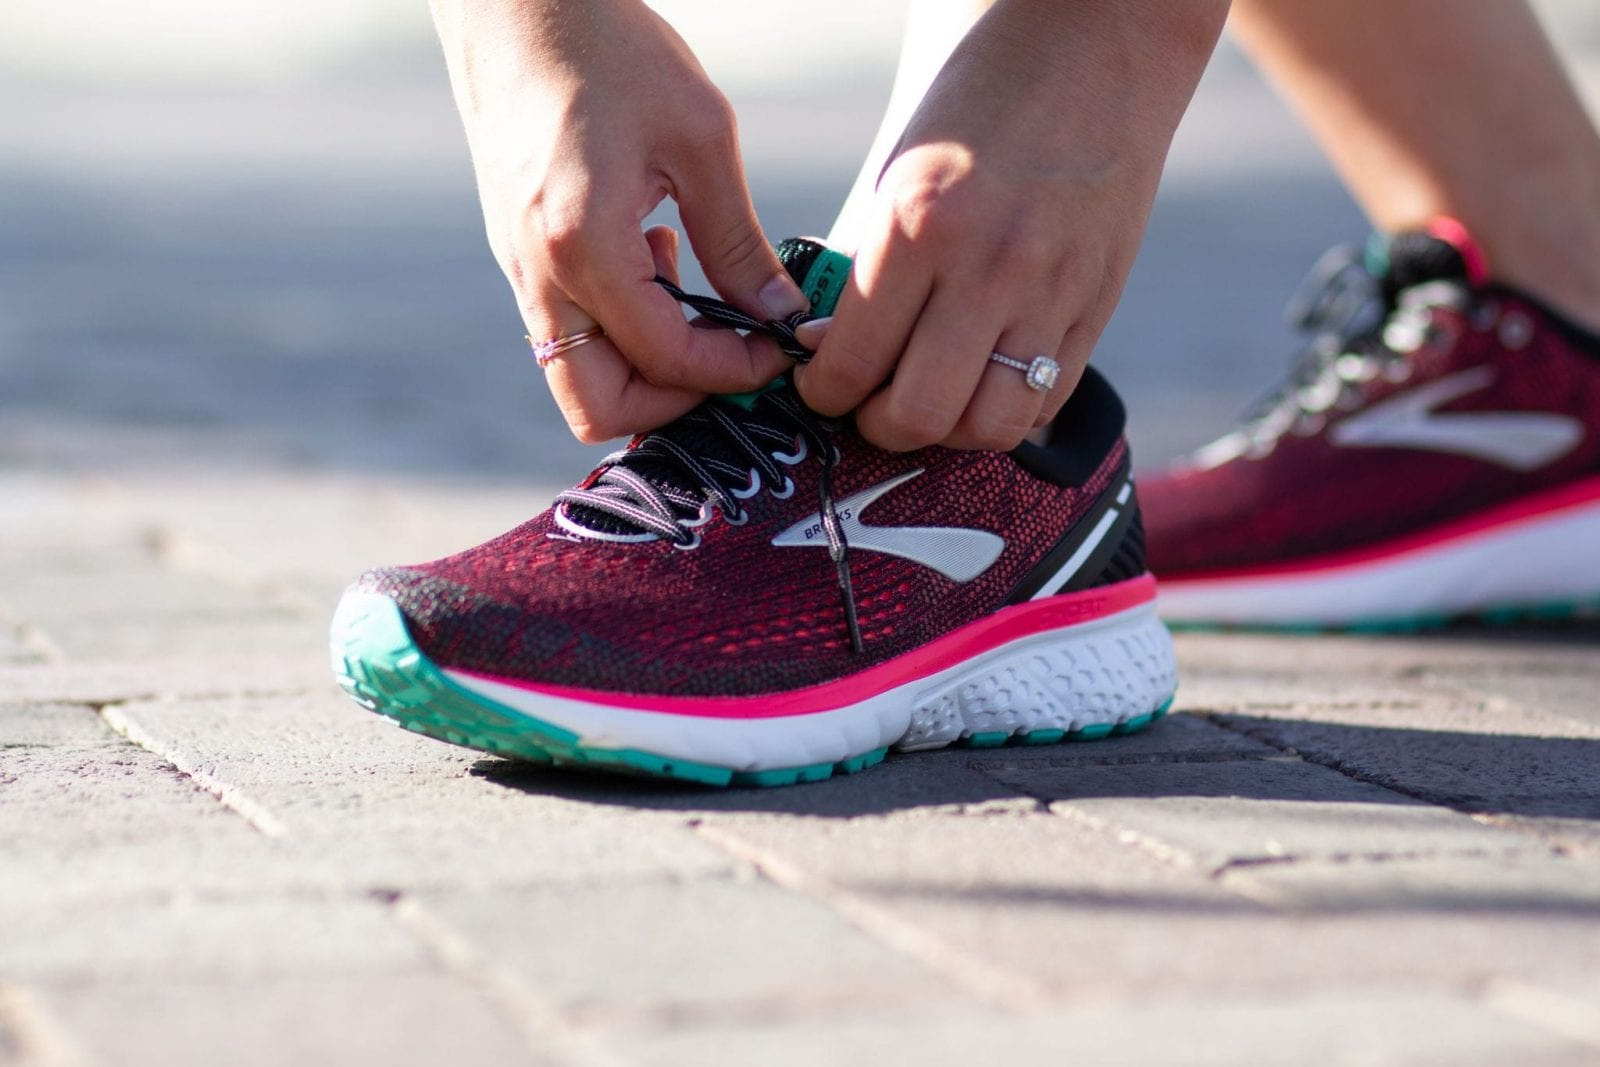 This is a close up ground shot of the new Brooks Ghost 11 running shoes, in the pink and teal color option.